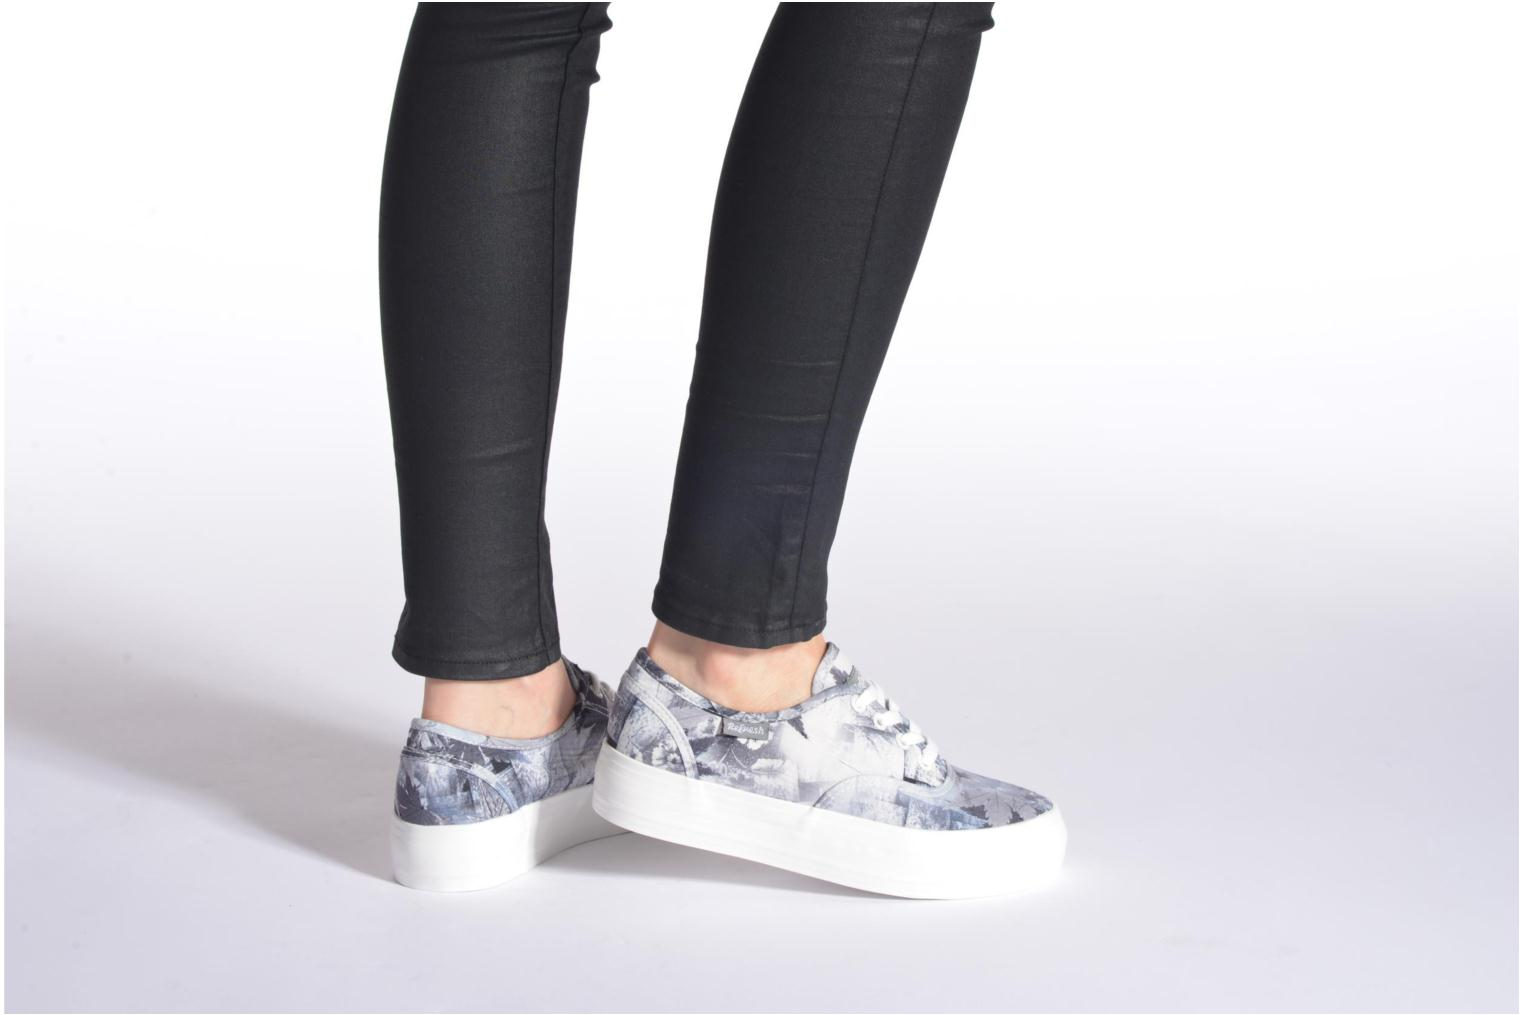 Sneakers Refresh Holly 62081 Multi se forneden